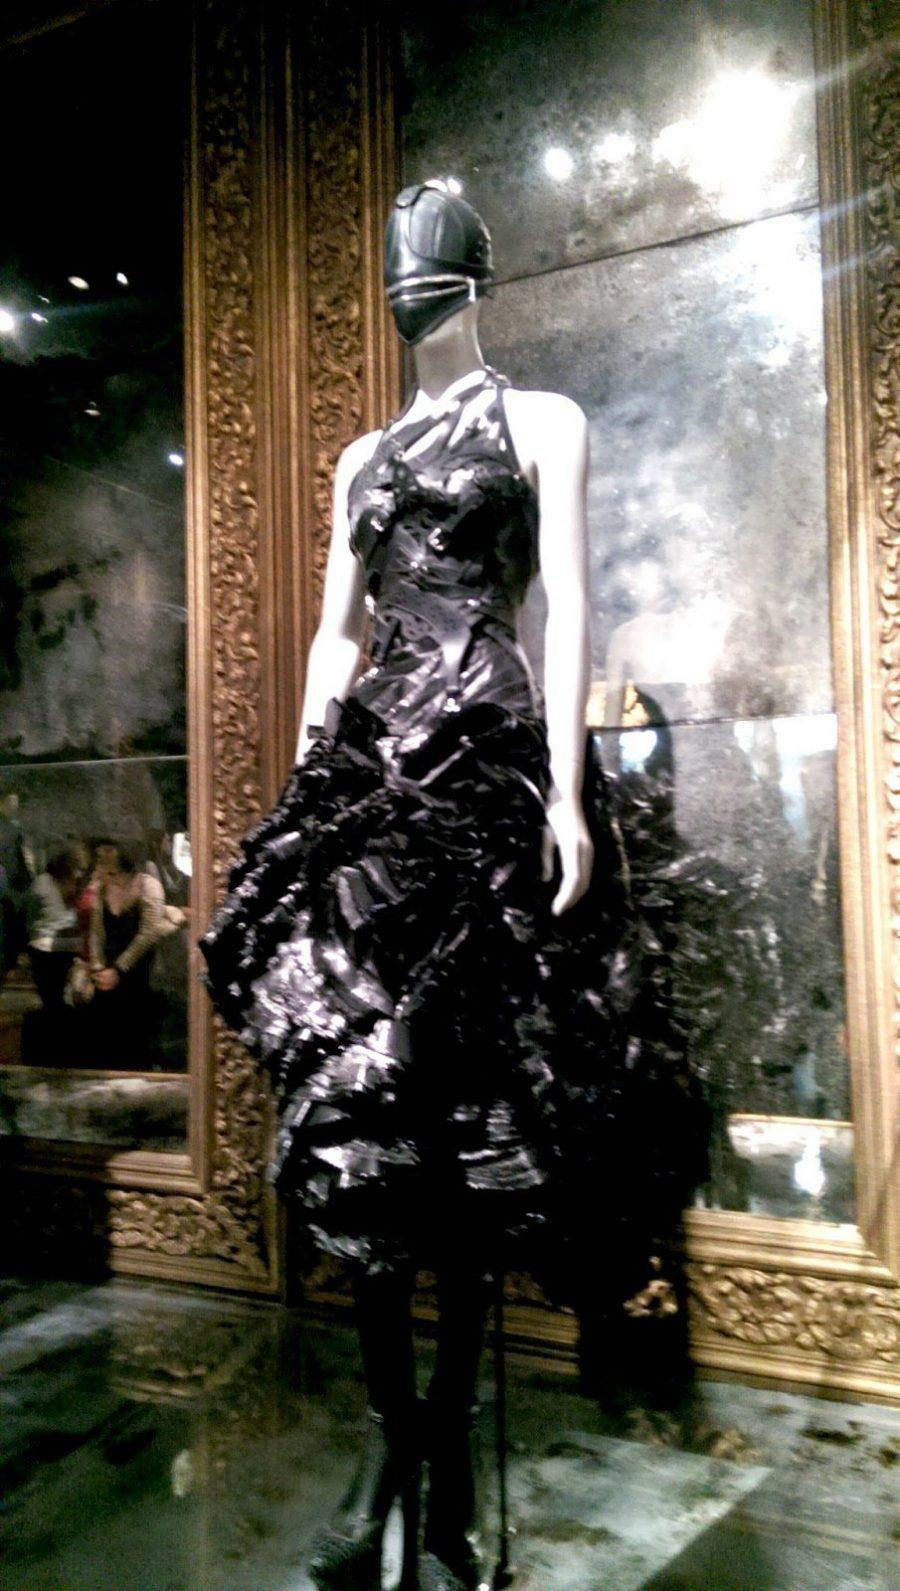 Savage Beauty: An Alexander McQueen Exhibition at the V&A - Romantic Gothic